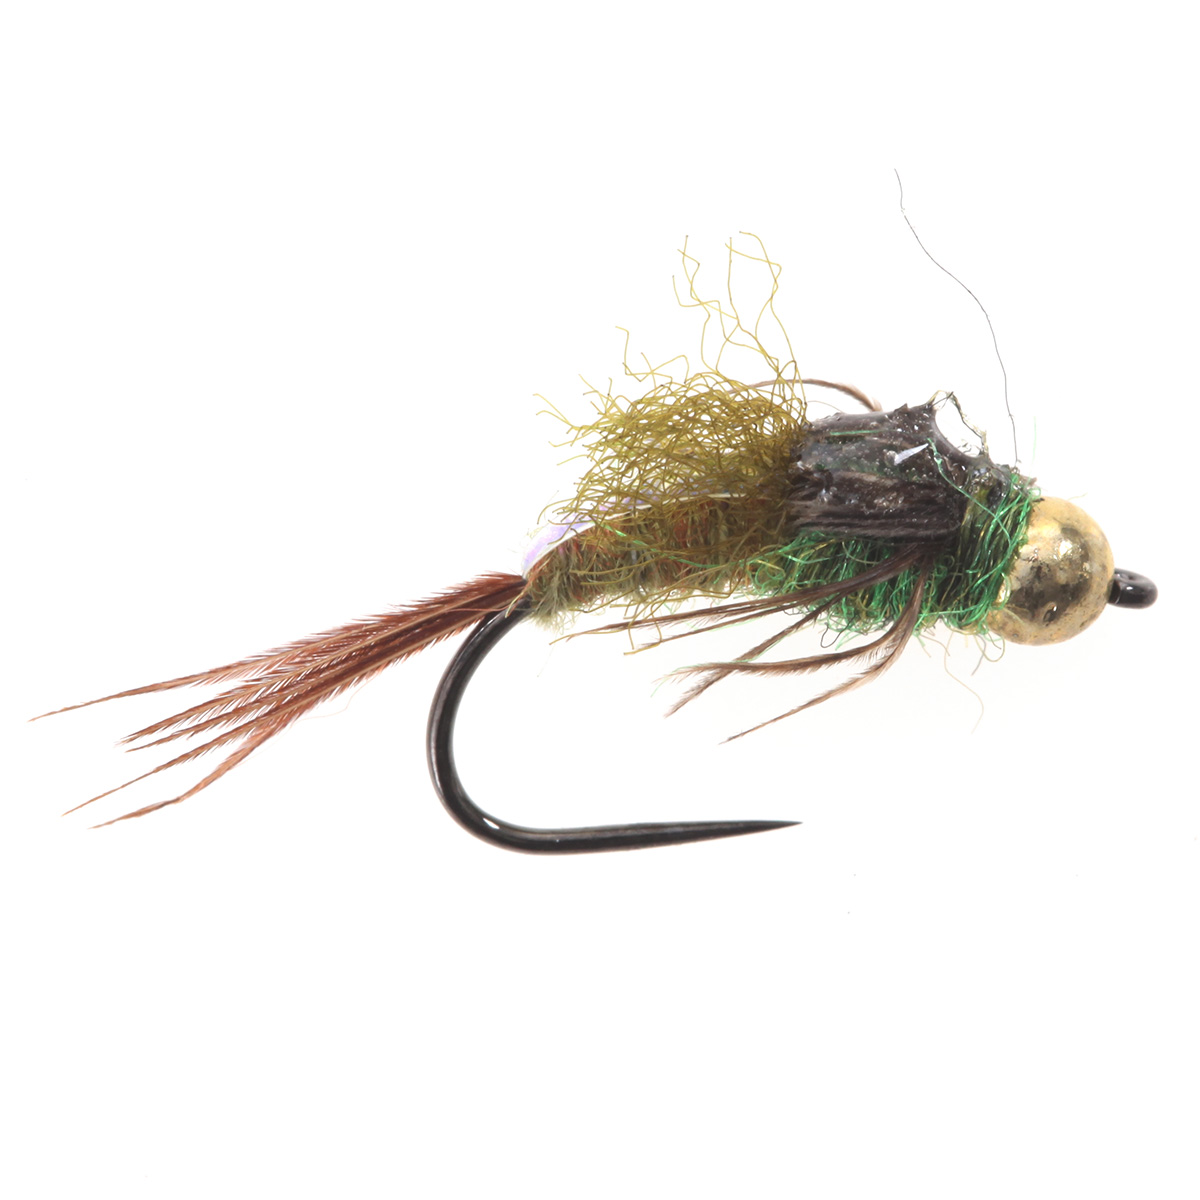 Tungsten BH Epoxy Back Bwo Blue Wing Olive